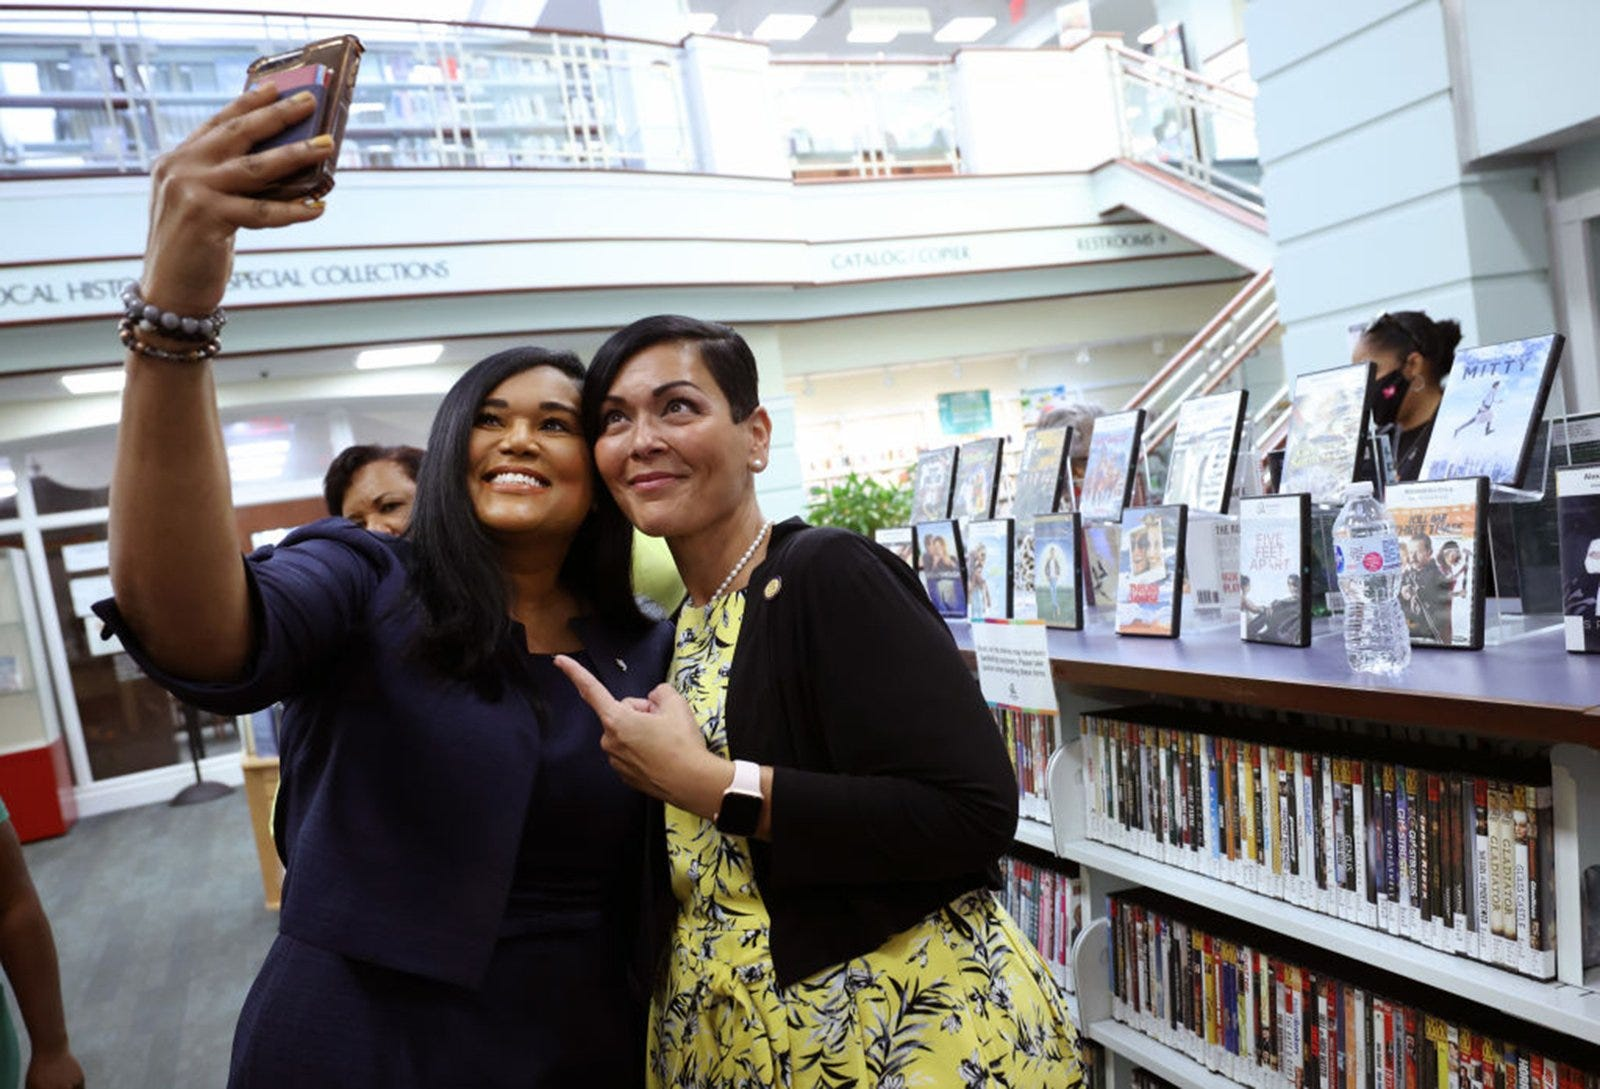 State Rep. Shawn Thierry, D-Houston, takes a photo with Hala Ayala, the Democratic nominee for Virginia lieutenant governor, on July 16 as they visit the Kate Waller Barrett Branch Library. It is the site of the 1939 Alexandria Library sit-in, where five Black men were arrested for attempting to register for a library card in Alexandria, Va.